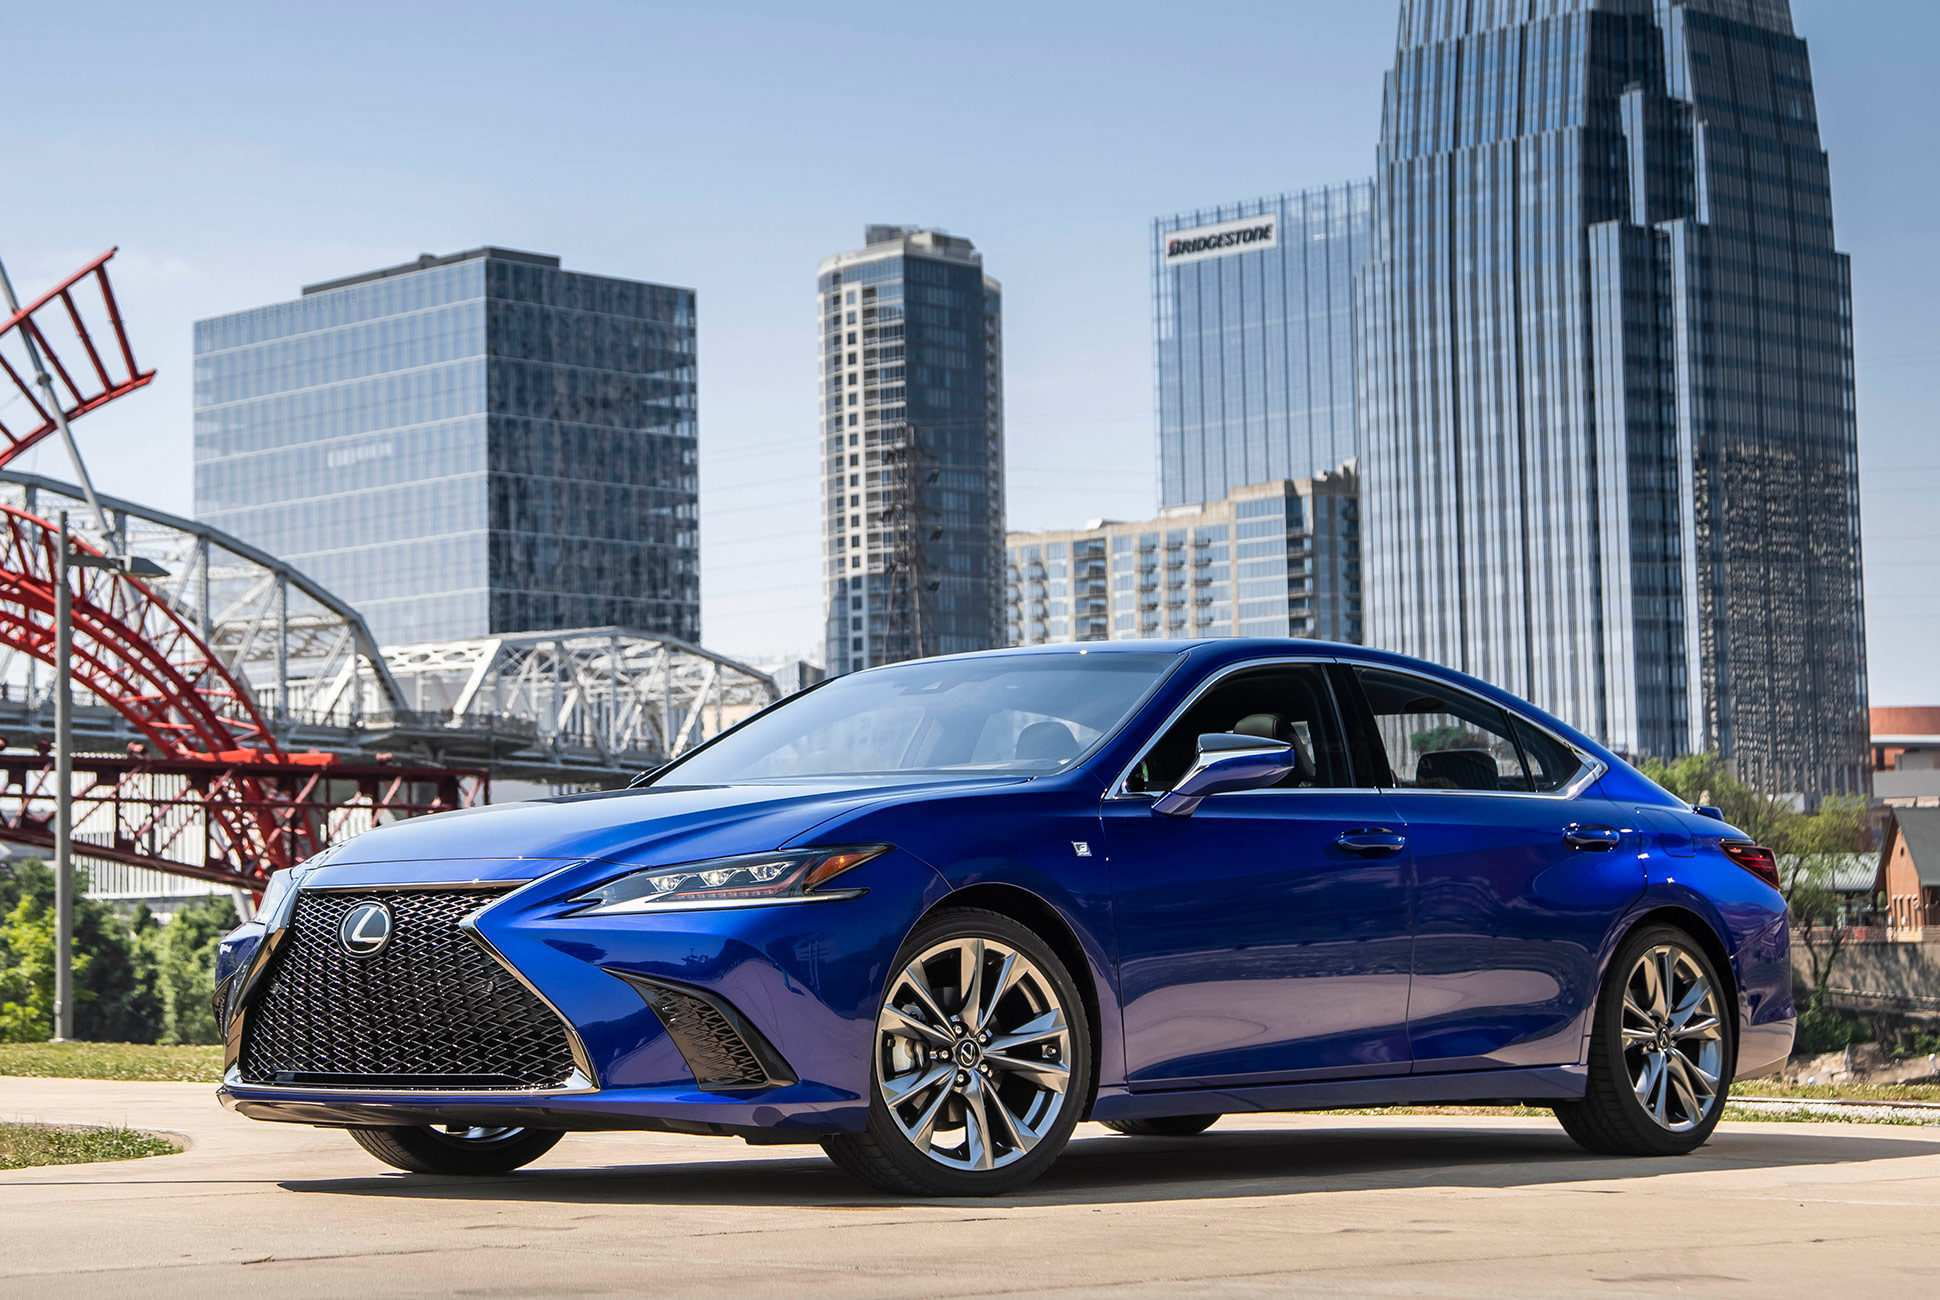 60 New Is 350 Lexus 2019 Pricing